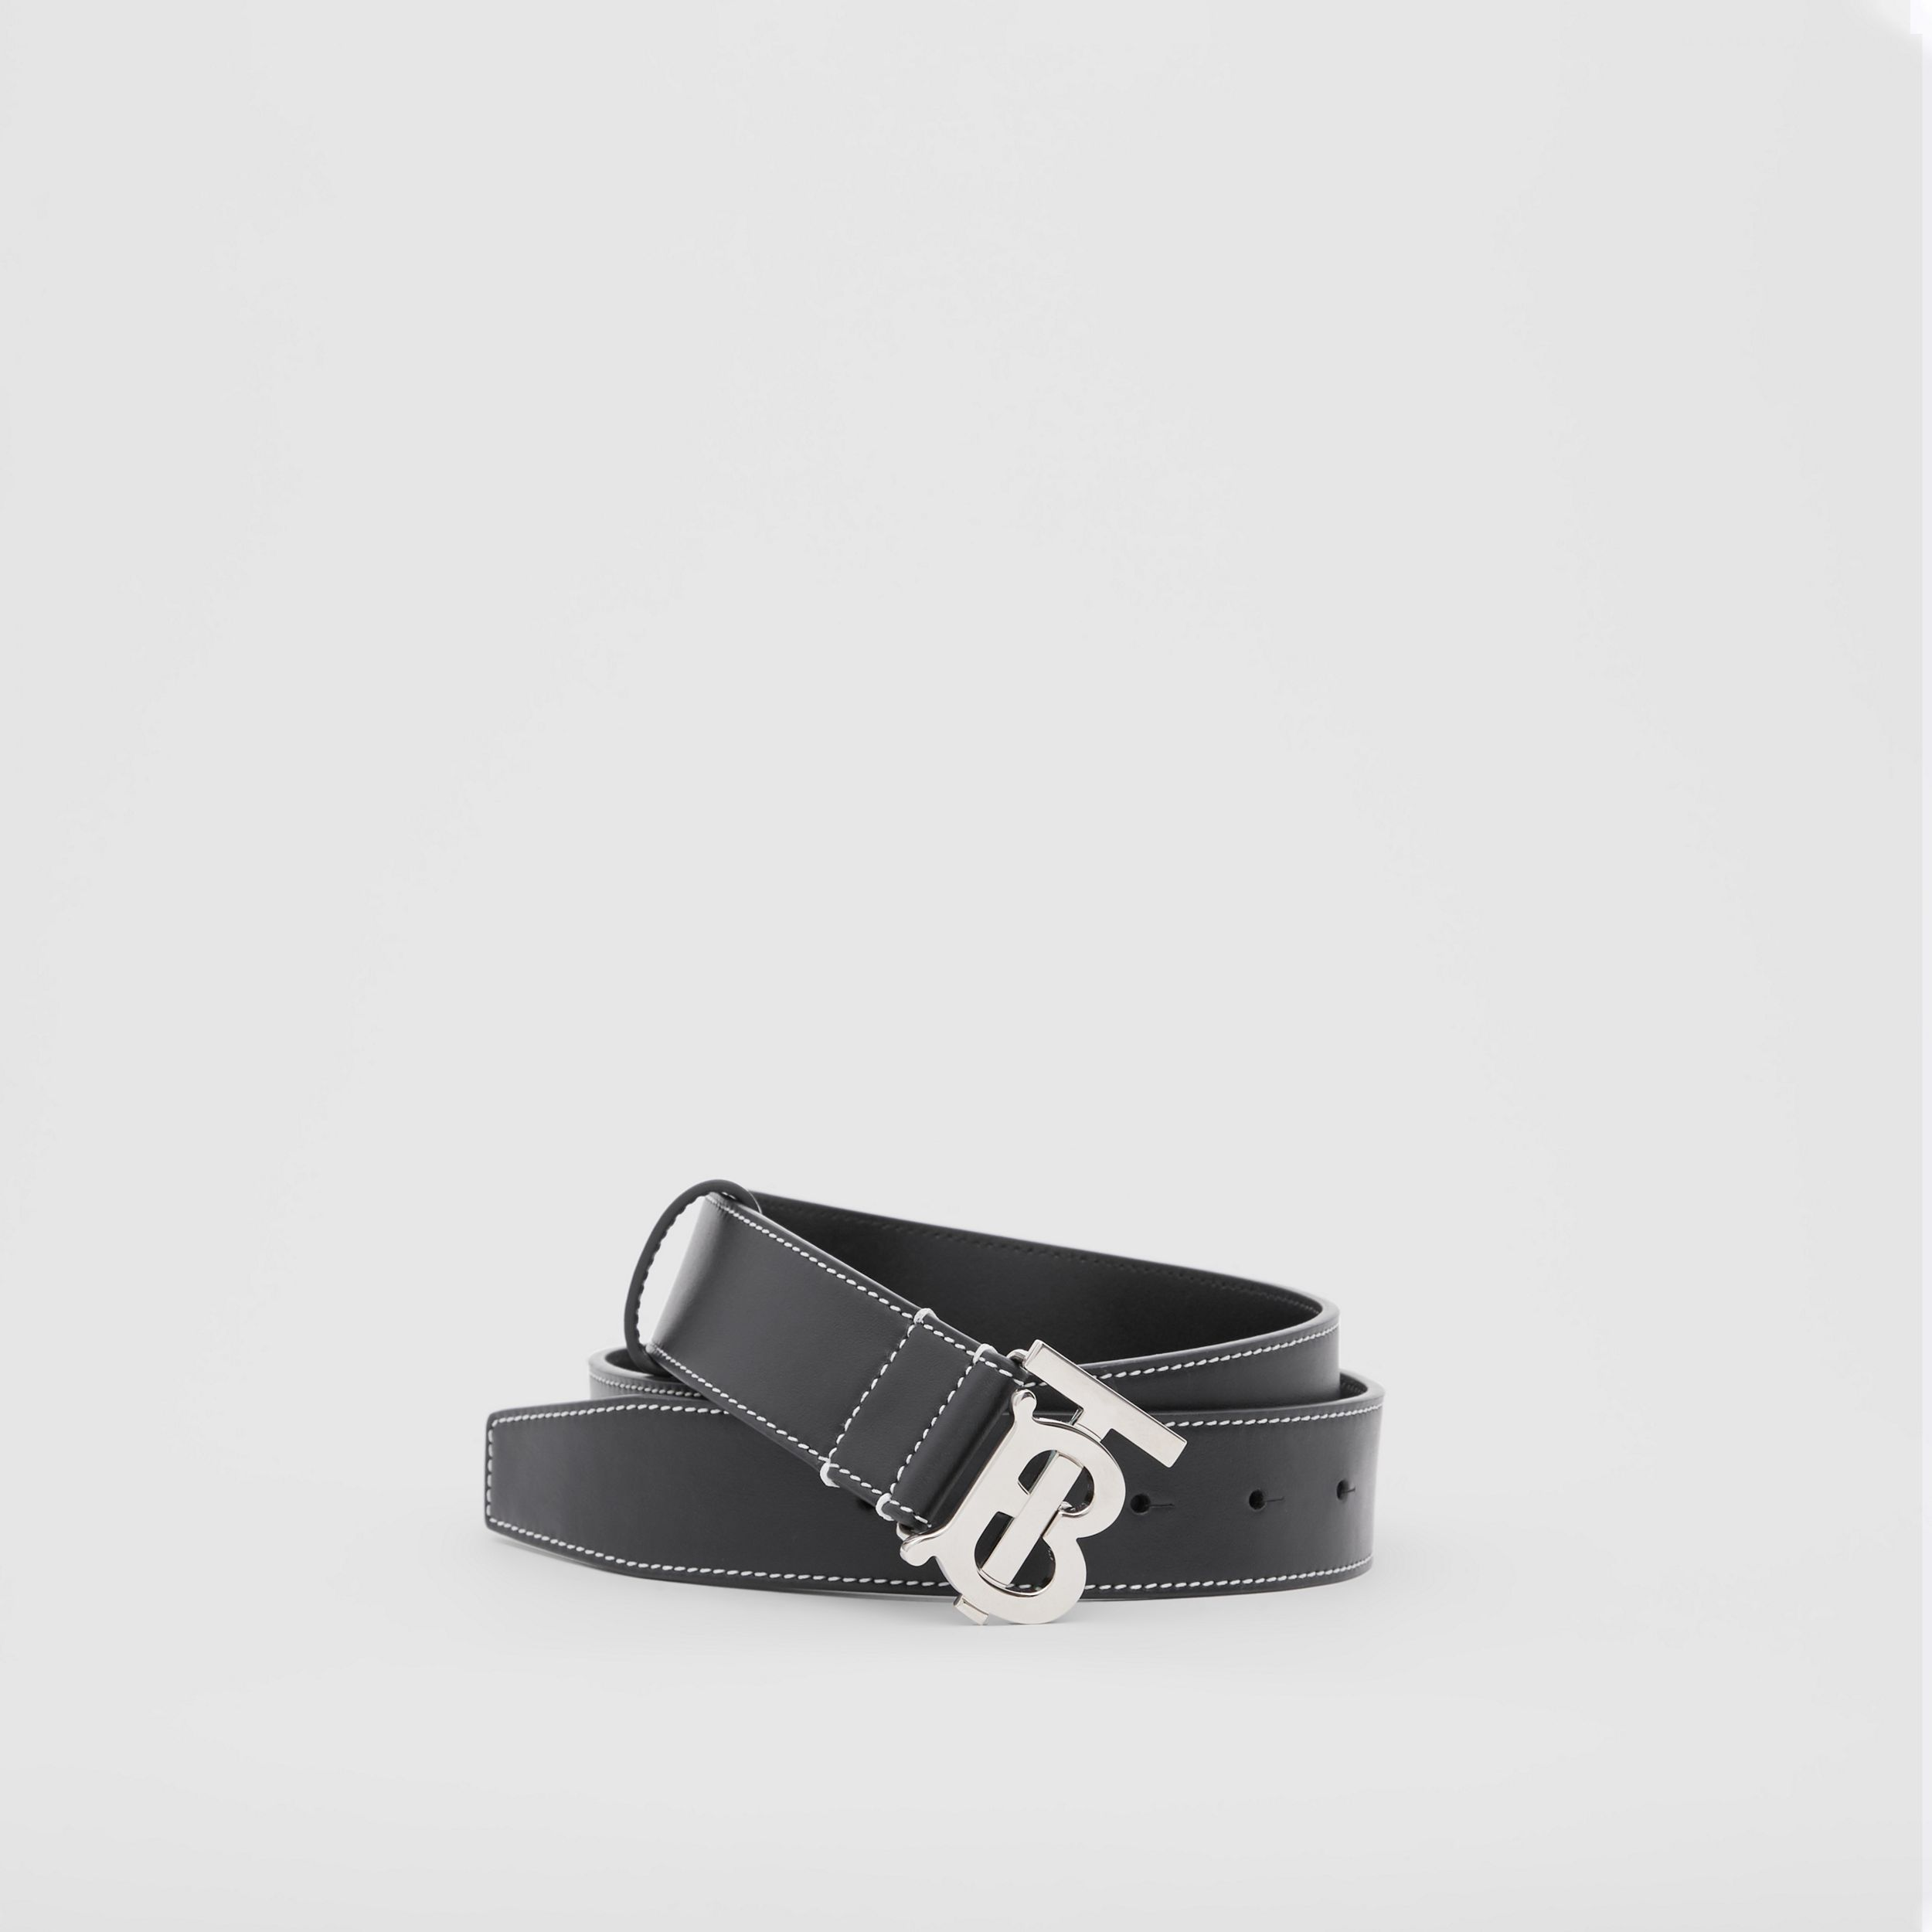 Monogram Motif Topstitched Leather Belt in Black - Men | Burberry - 1